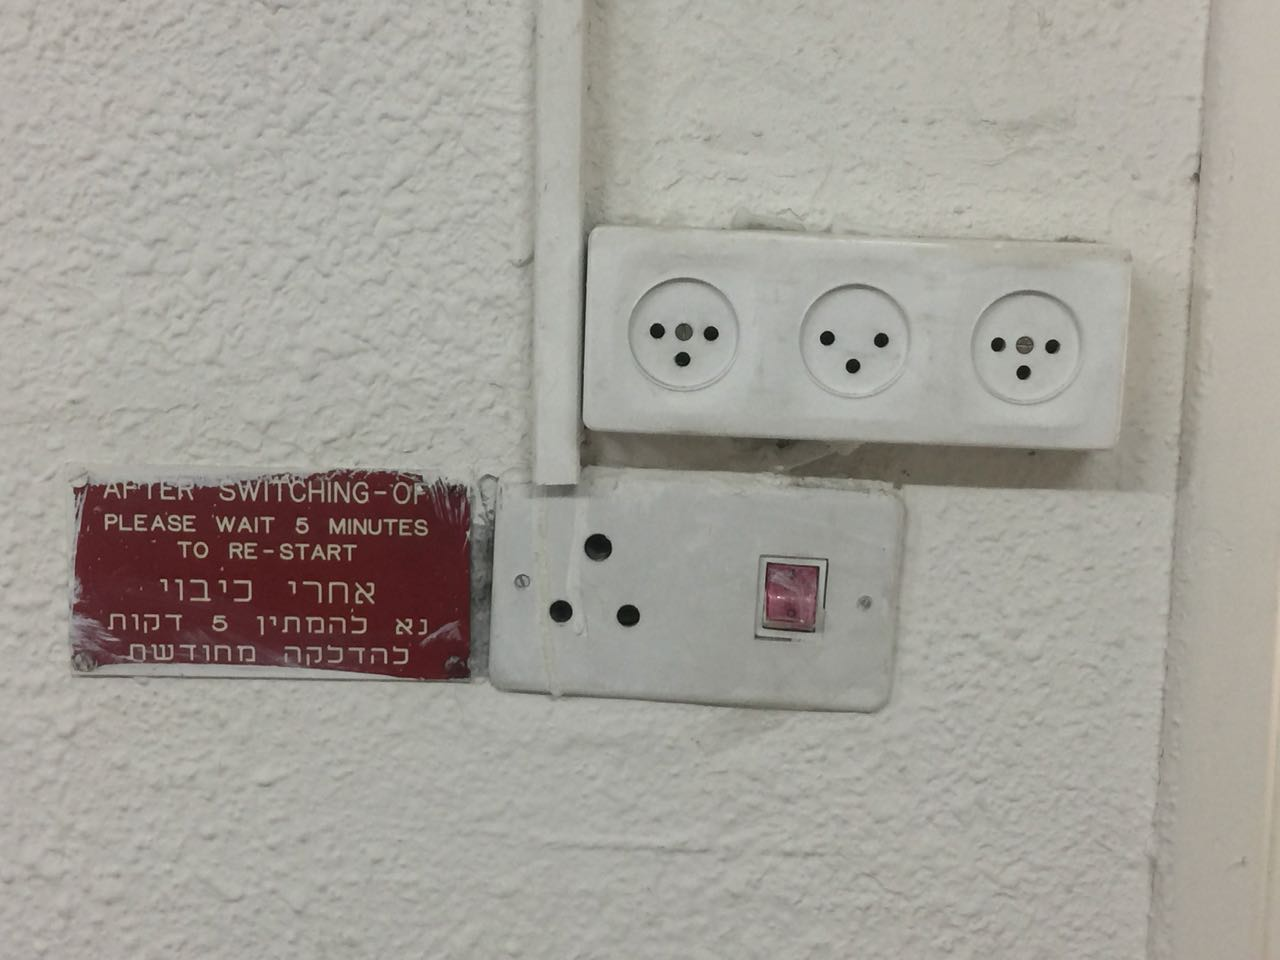 Even the South African wall socket